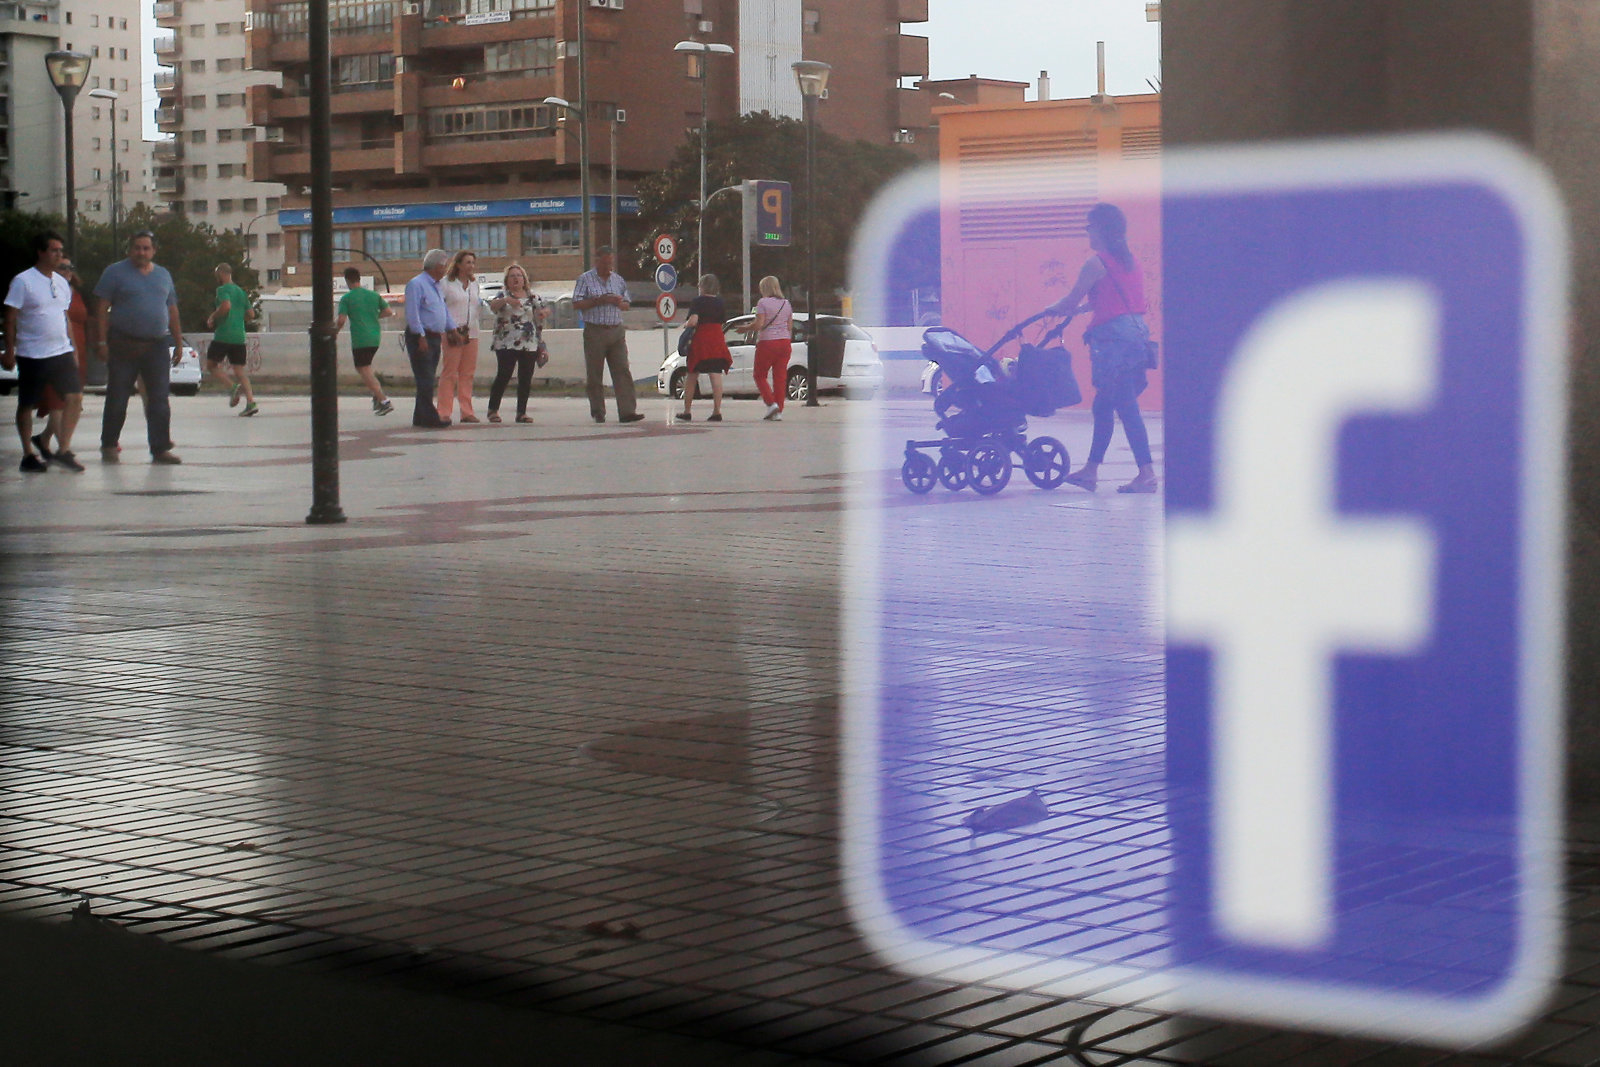 Facebook logo is seen on a shop window in Malaga, Spain, June 4, 2018. REUTERS/Jon Nazca